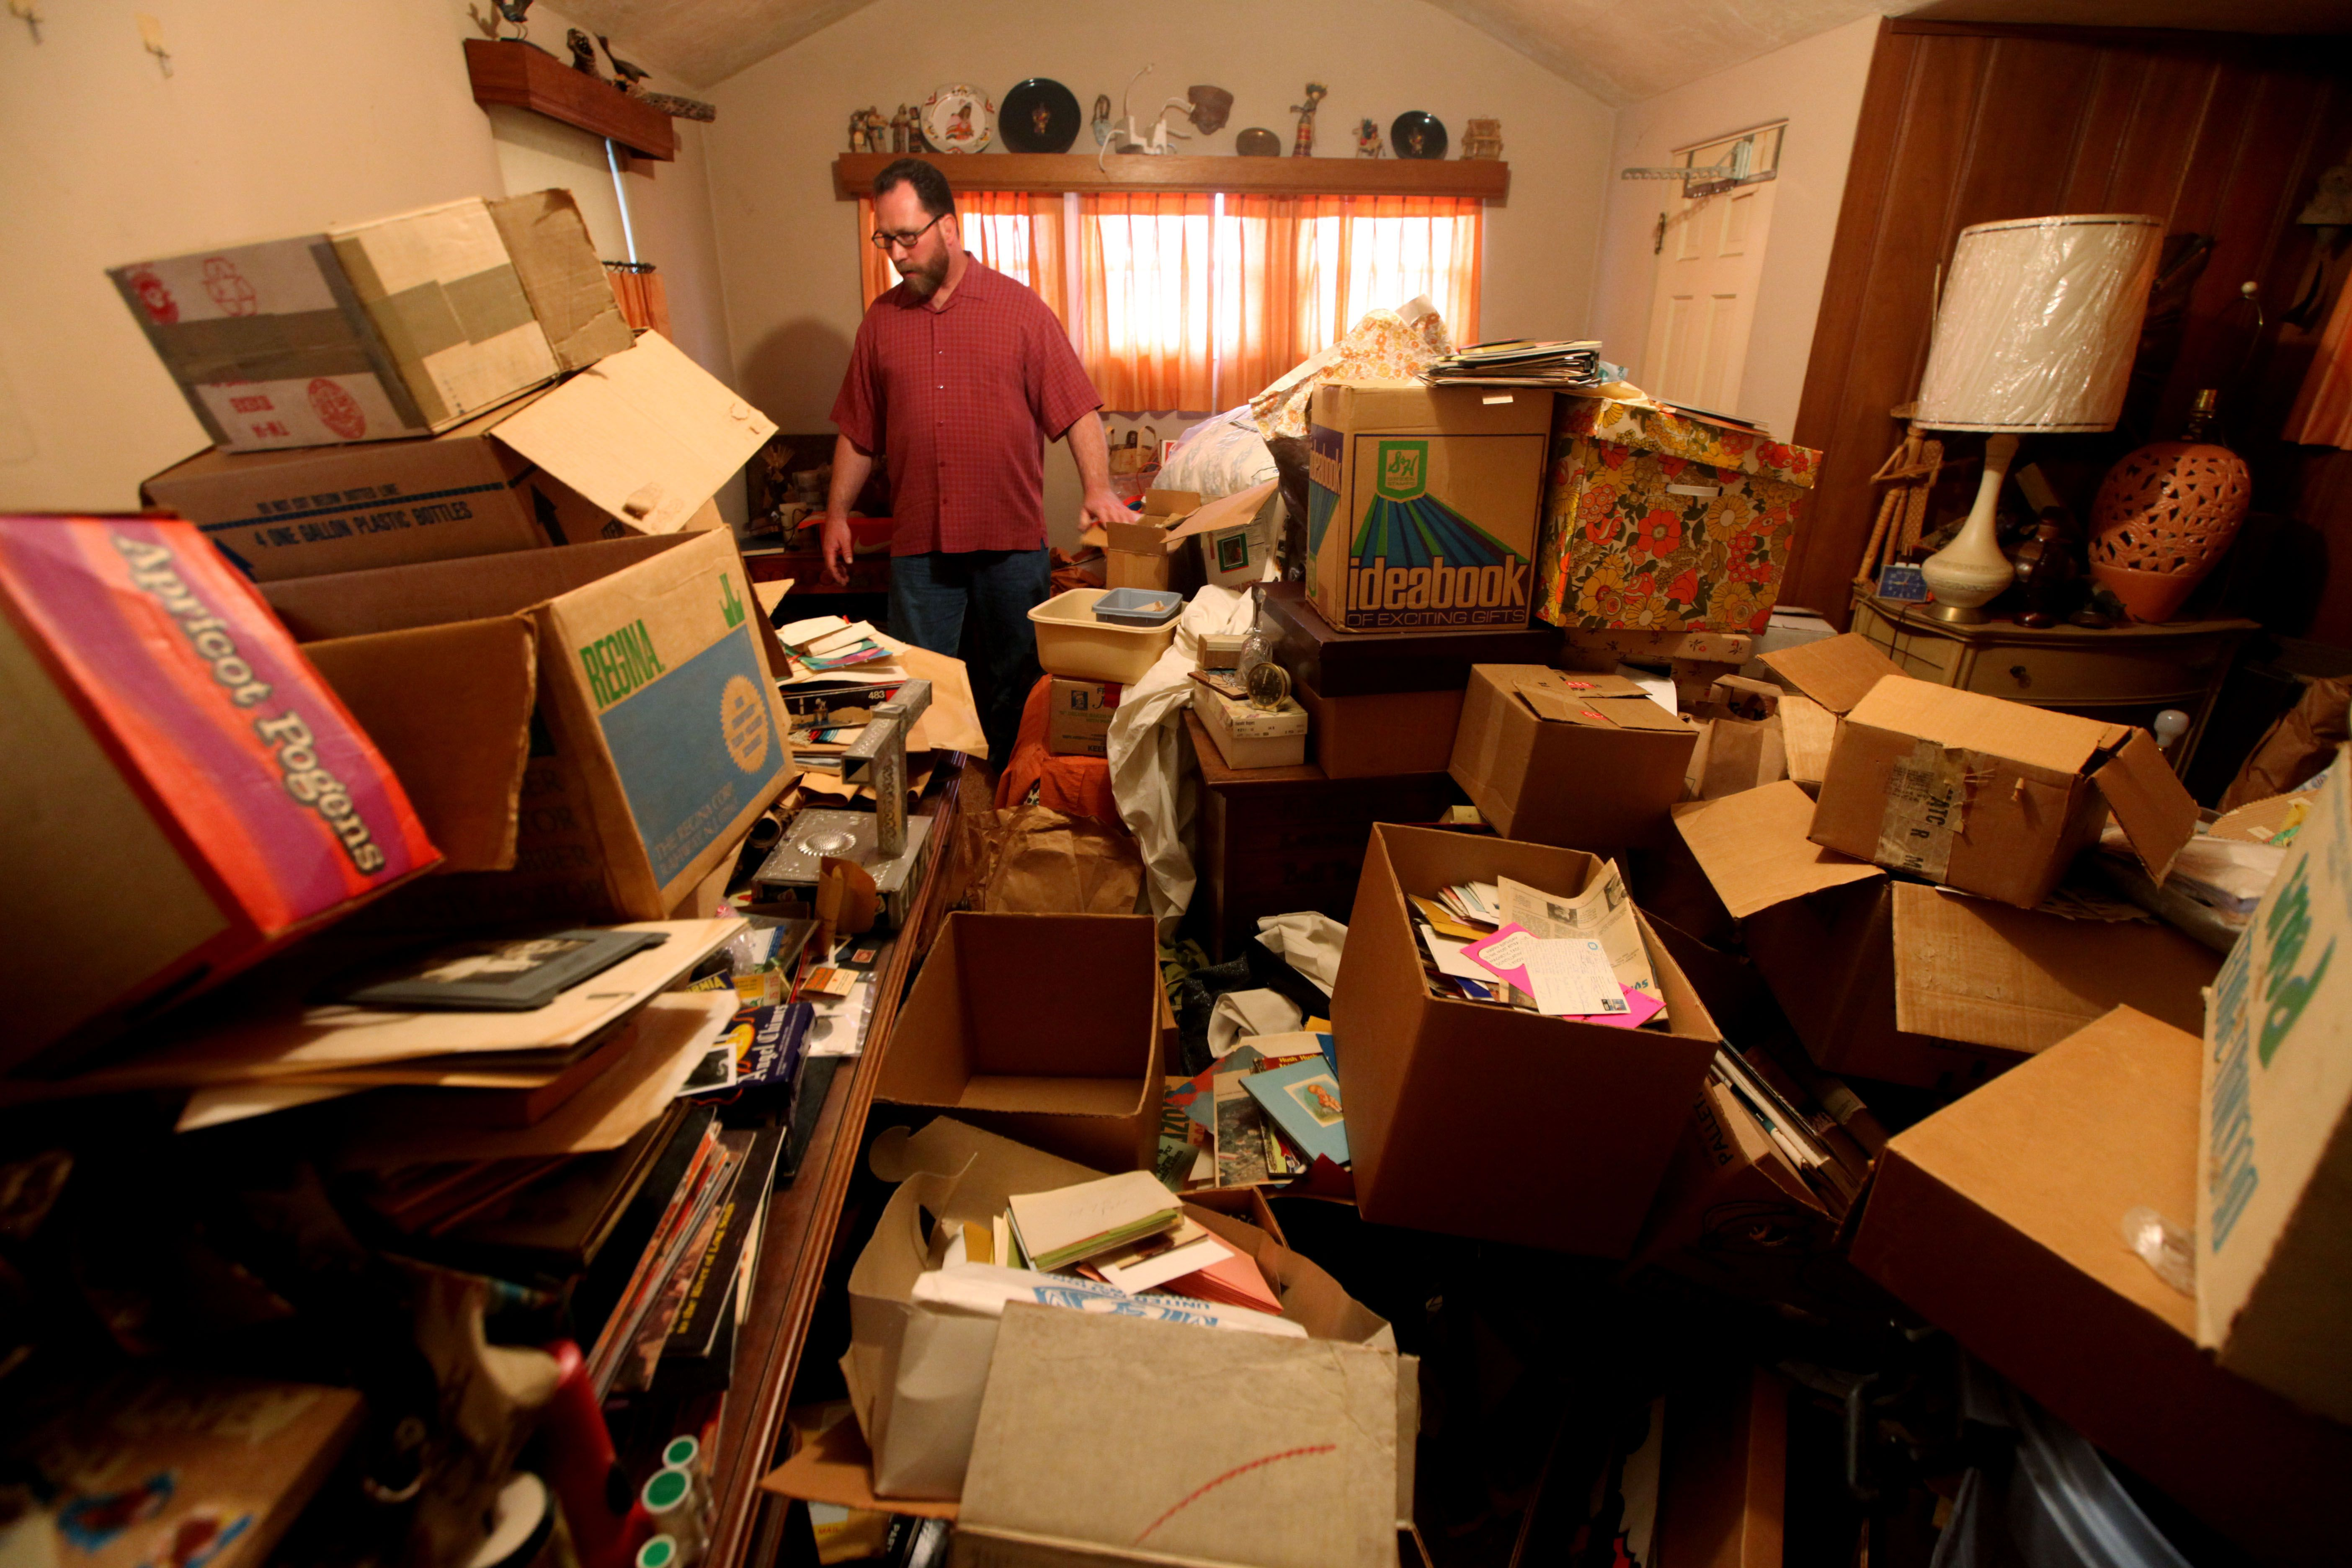 A son prepares to clean out his mother's cluttered home